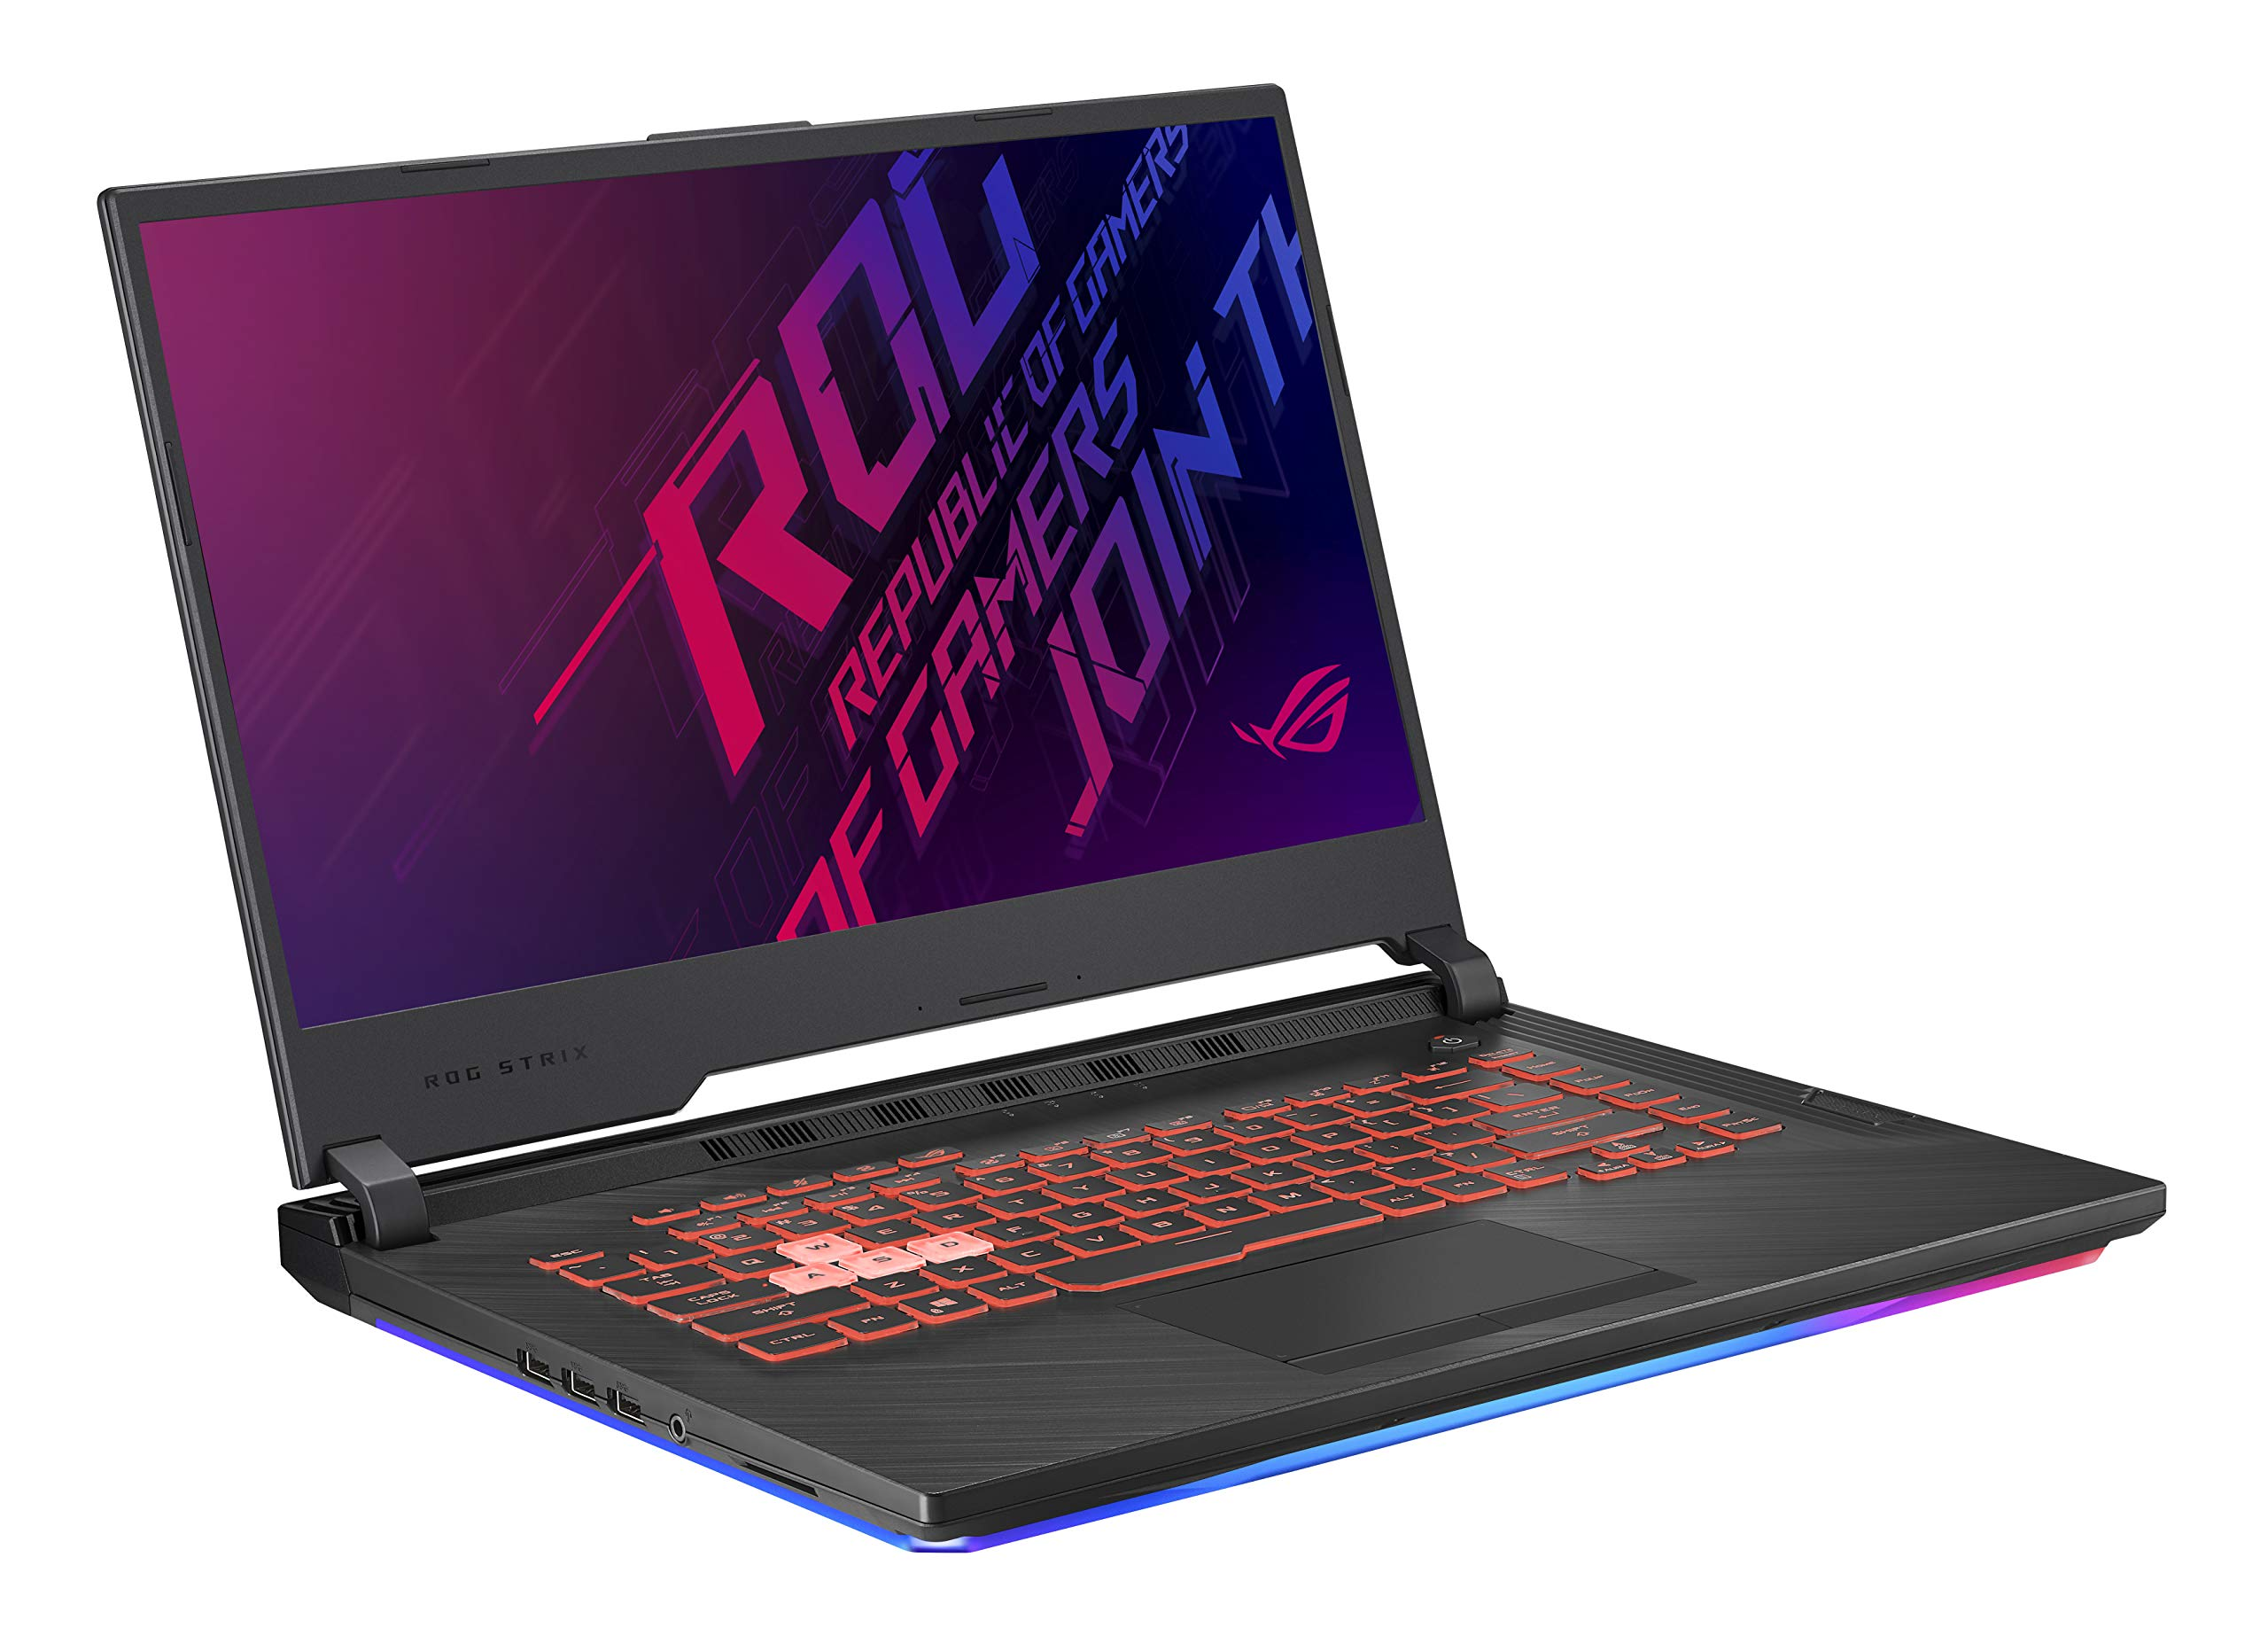 Asus ROG Strix G (2019) Gaming Laptop, 15.6'' IPS Type FHD, NVIDIA GeForce GTX 1650, Intel Core i7-9750H, 16GB DDR4, 1TB PCIe Nvme SSD, RGB KB, Windows 10 Home, GL531GT-EB76 by ASUS